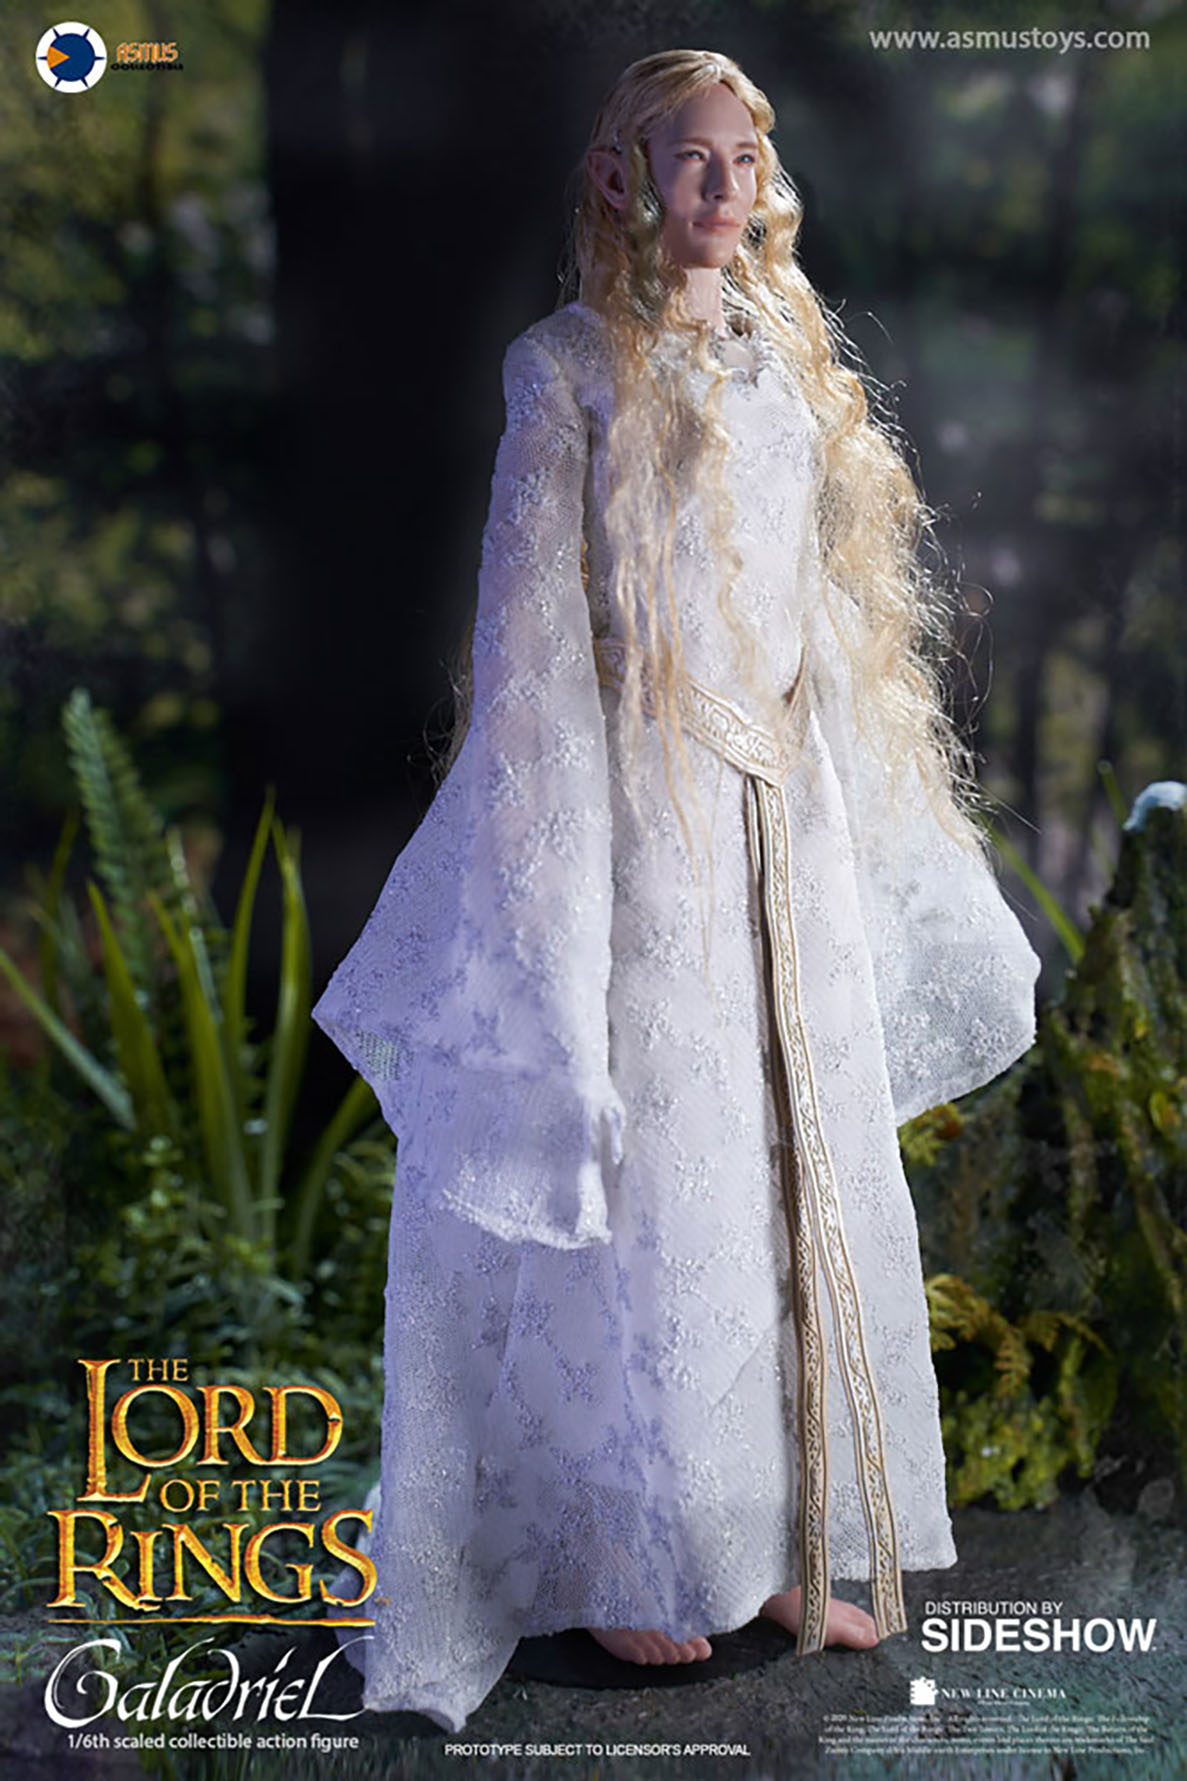 Hottoys Lord of the Rings: Galadriel 1:6 Scale Figure